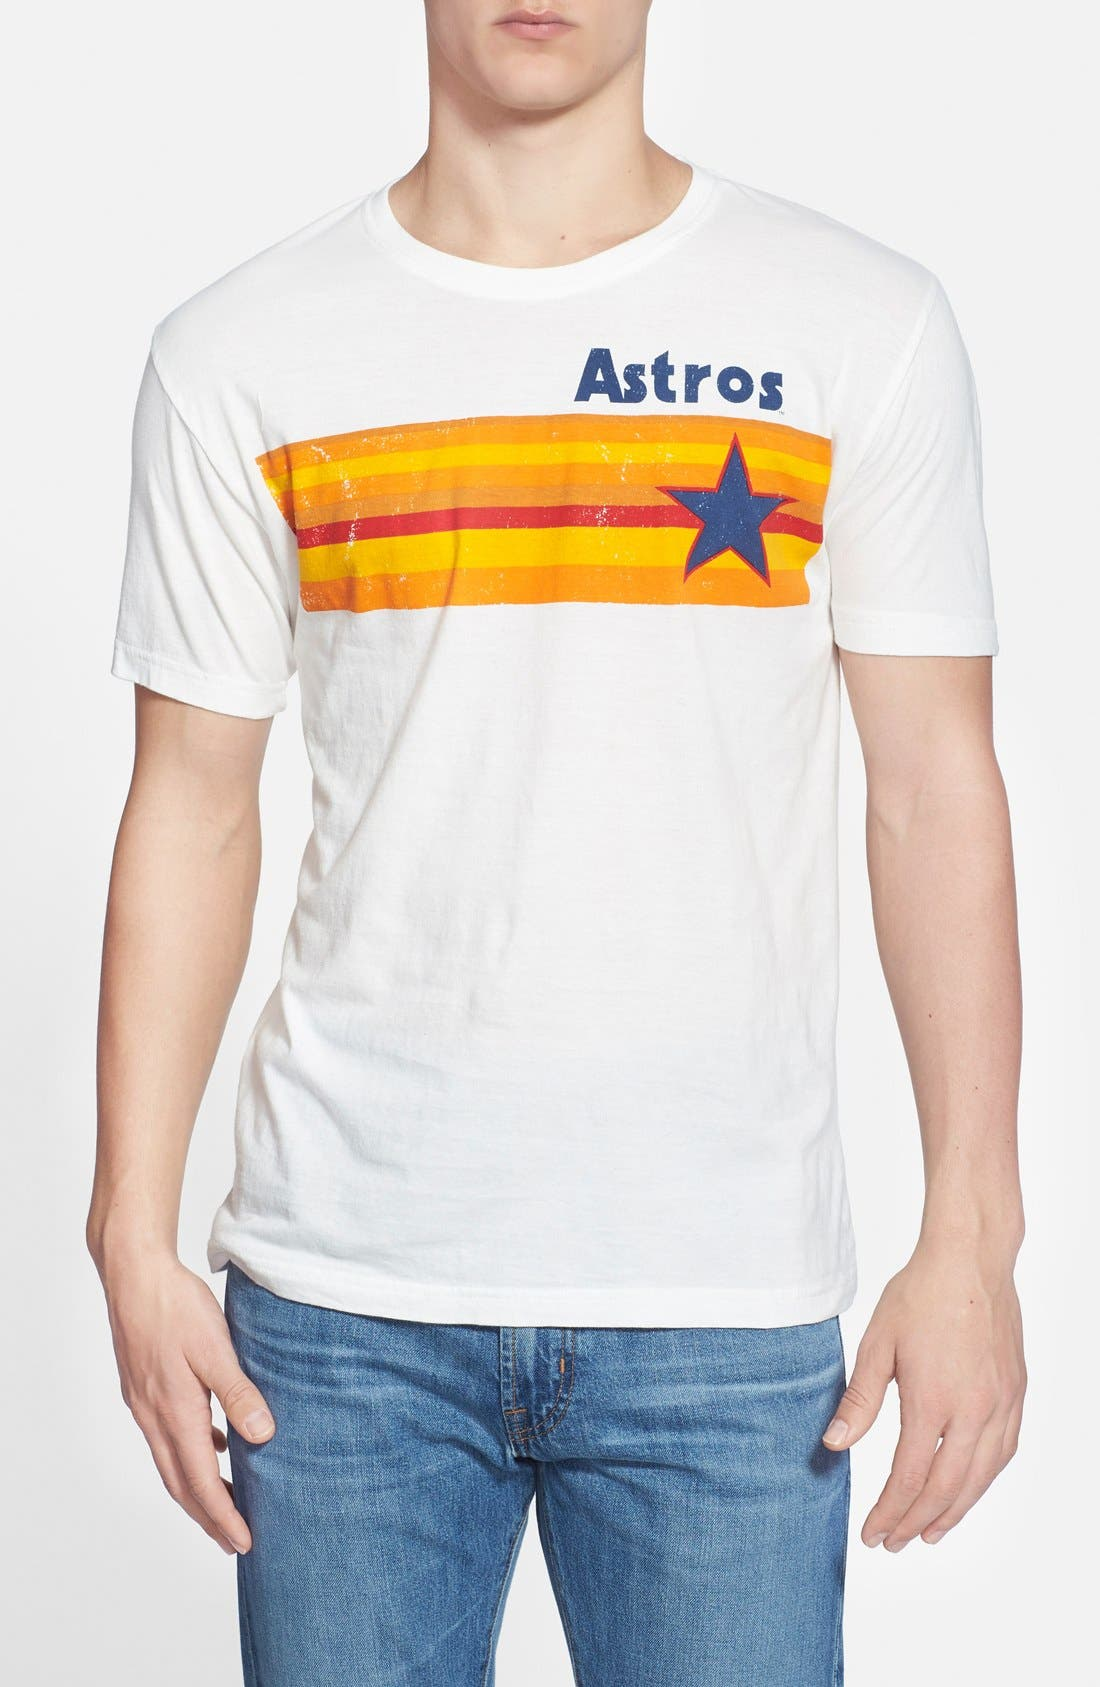 Red Jacket 'Houston Astros - Brass Tacks' T-Shirt